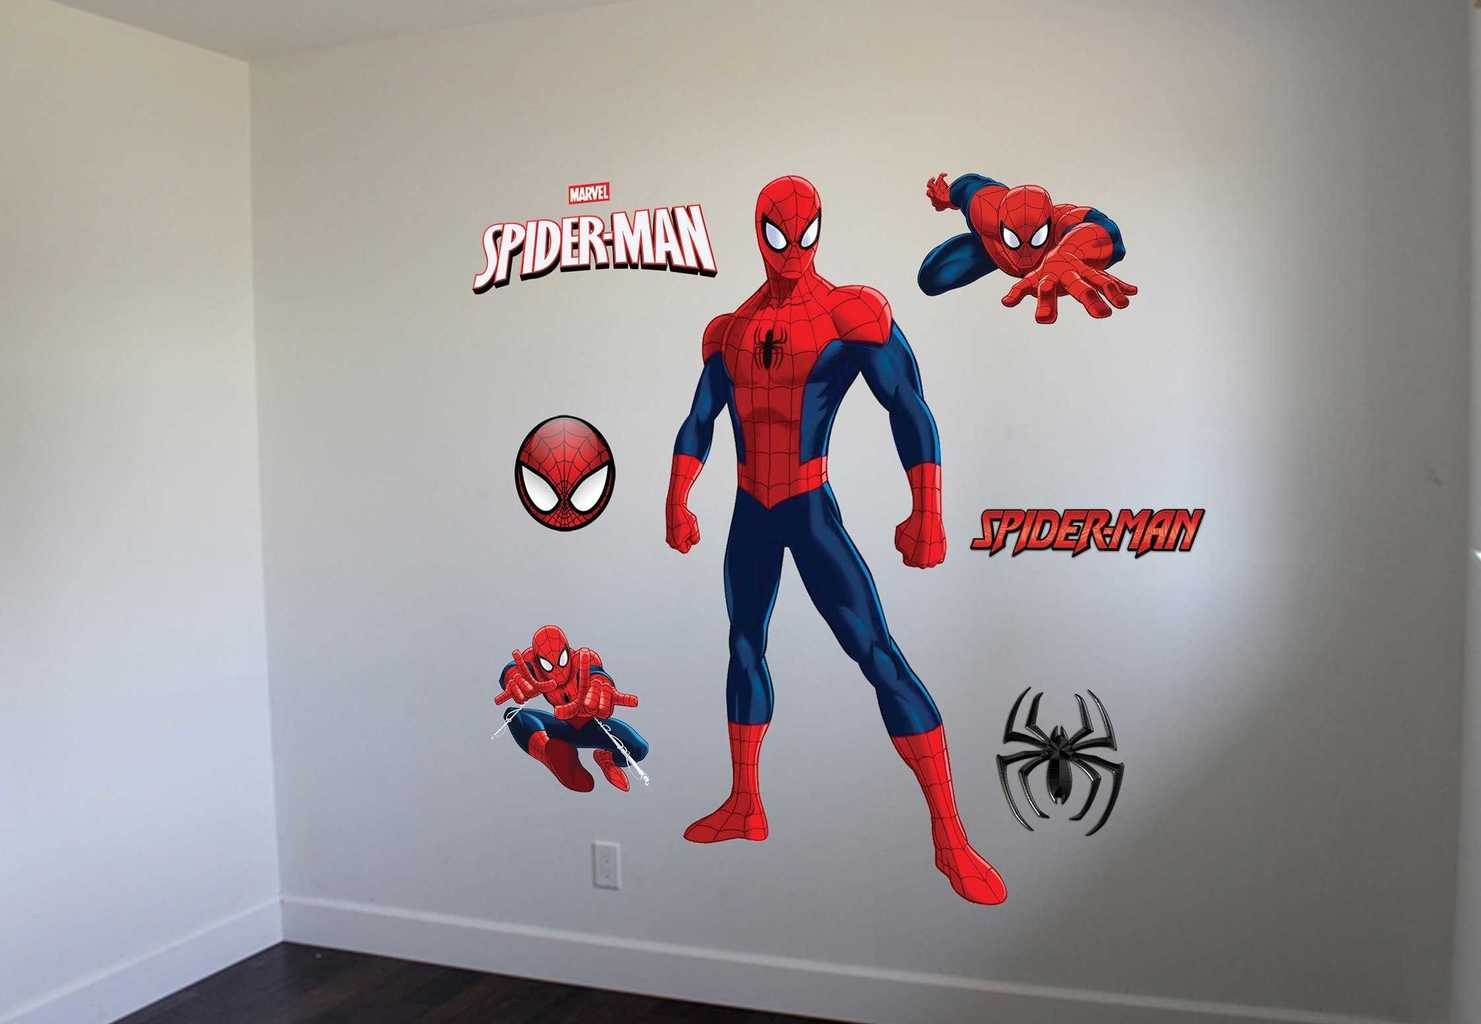 Genial Spiderman Wall Decal Graphic